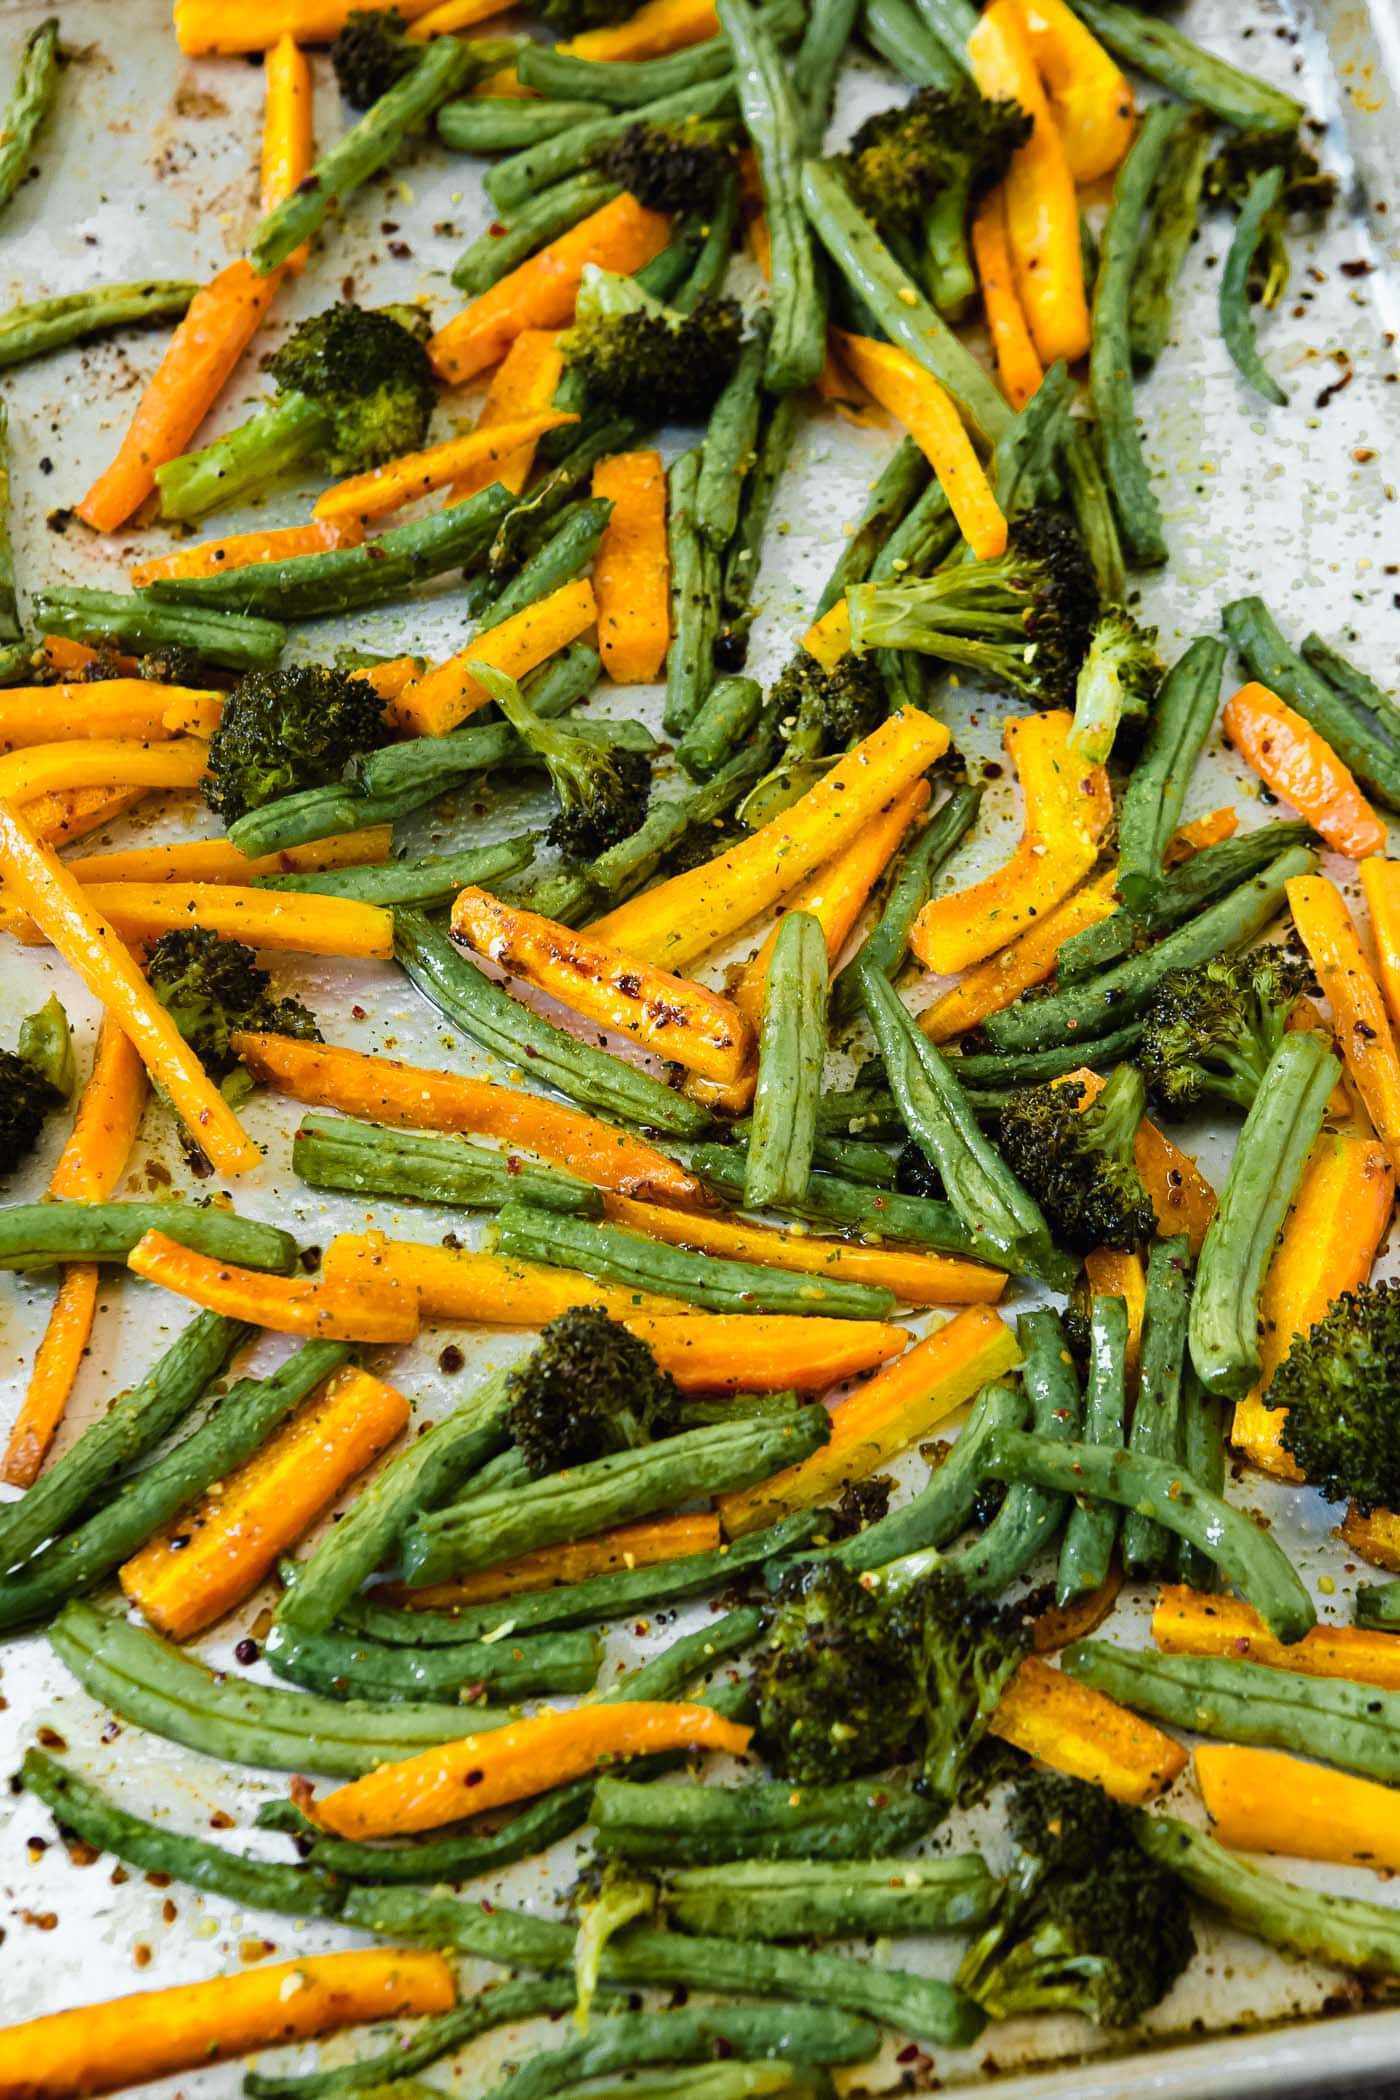 a photo of a roasted vegetable medley on a baking sheet